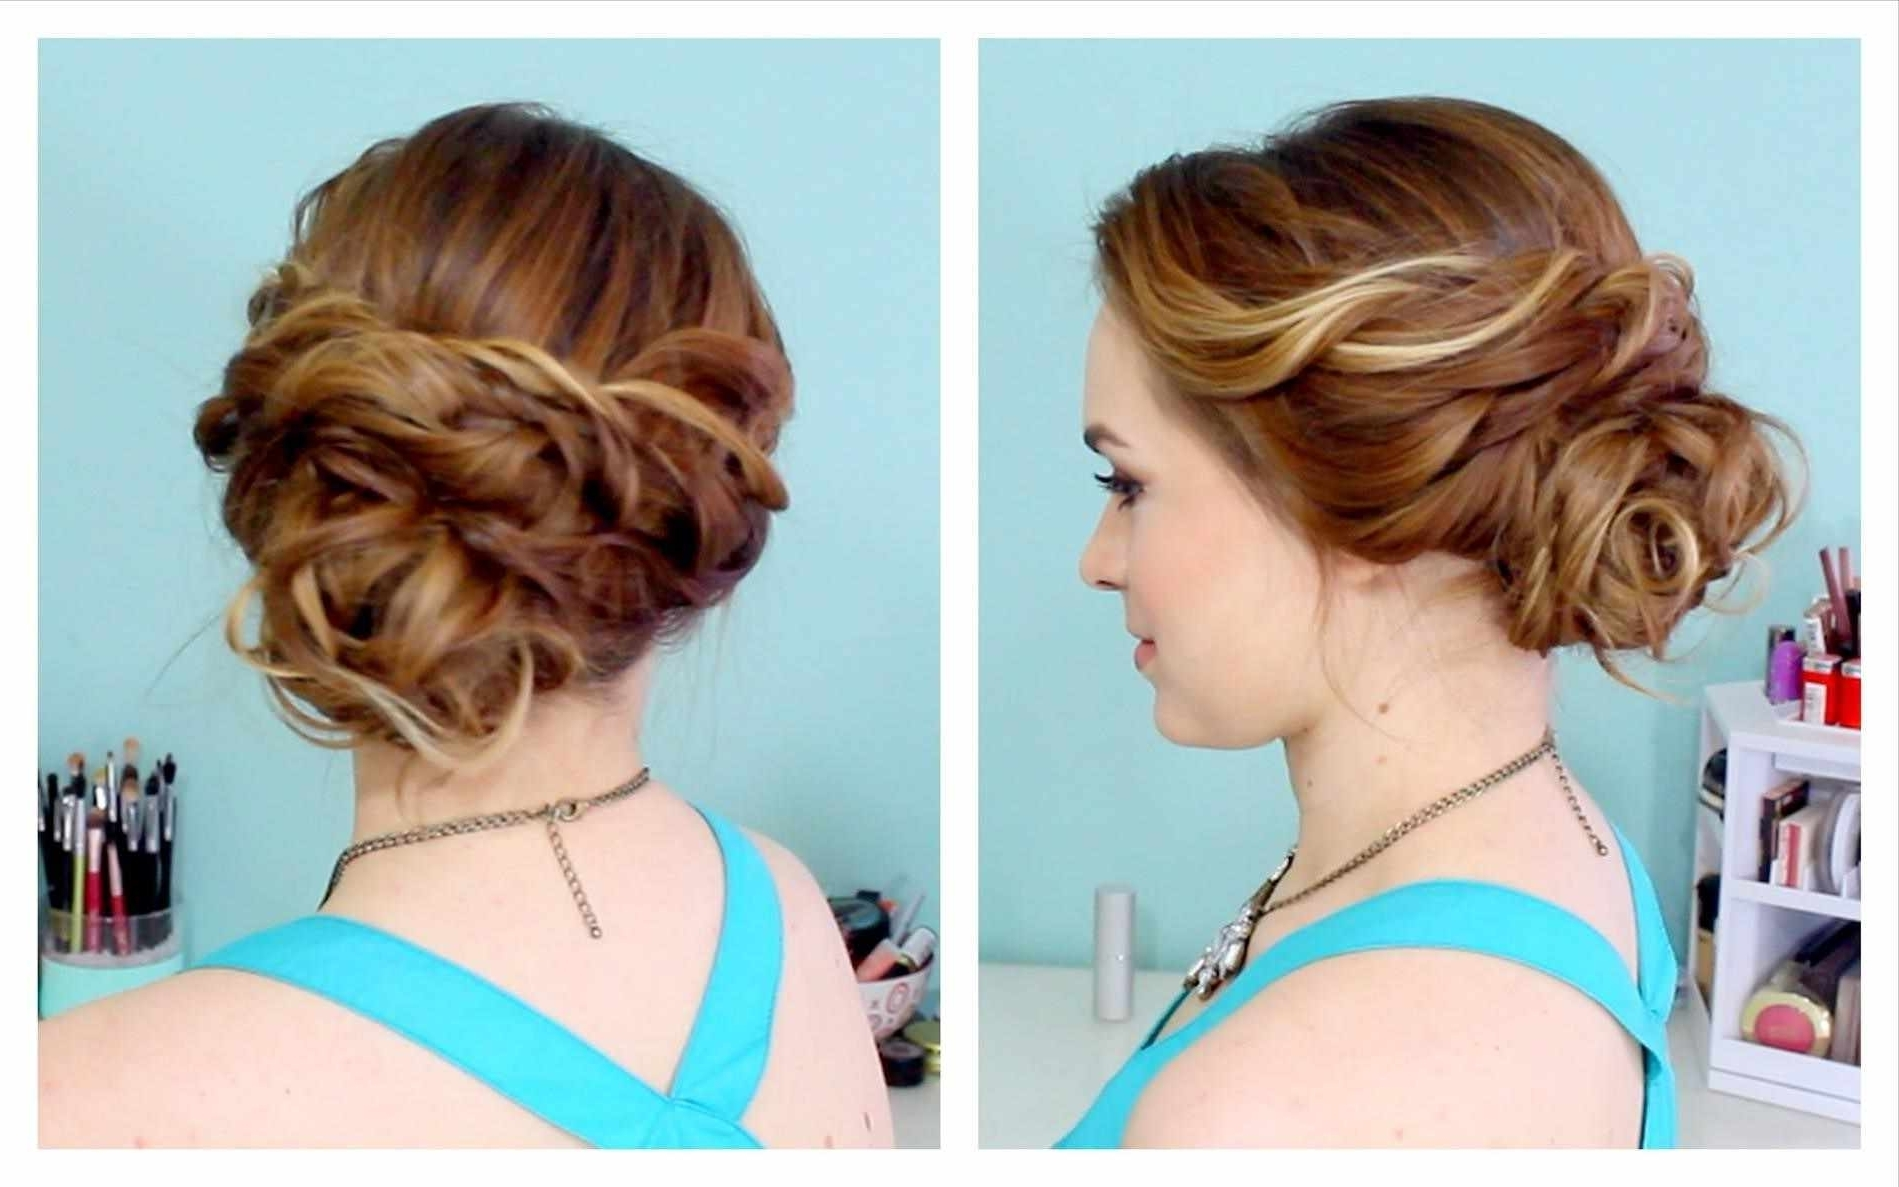 Amusing Loose Buns Hairstyles About Indian Low Bun Hairstyles Loose With Regard To Loose Bun Updo Hairstyles (View 2 of 15)